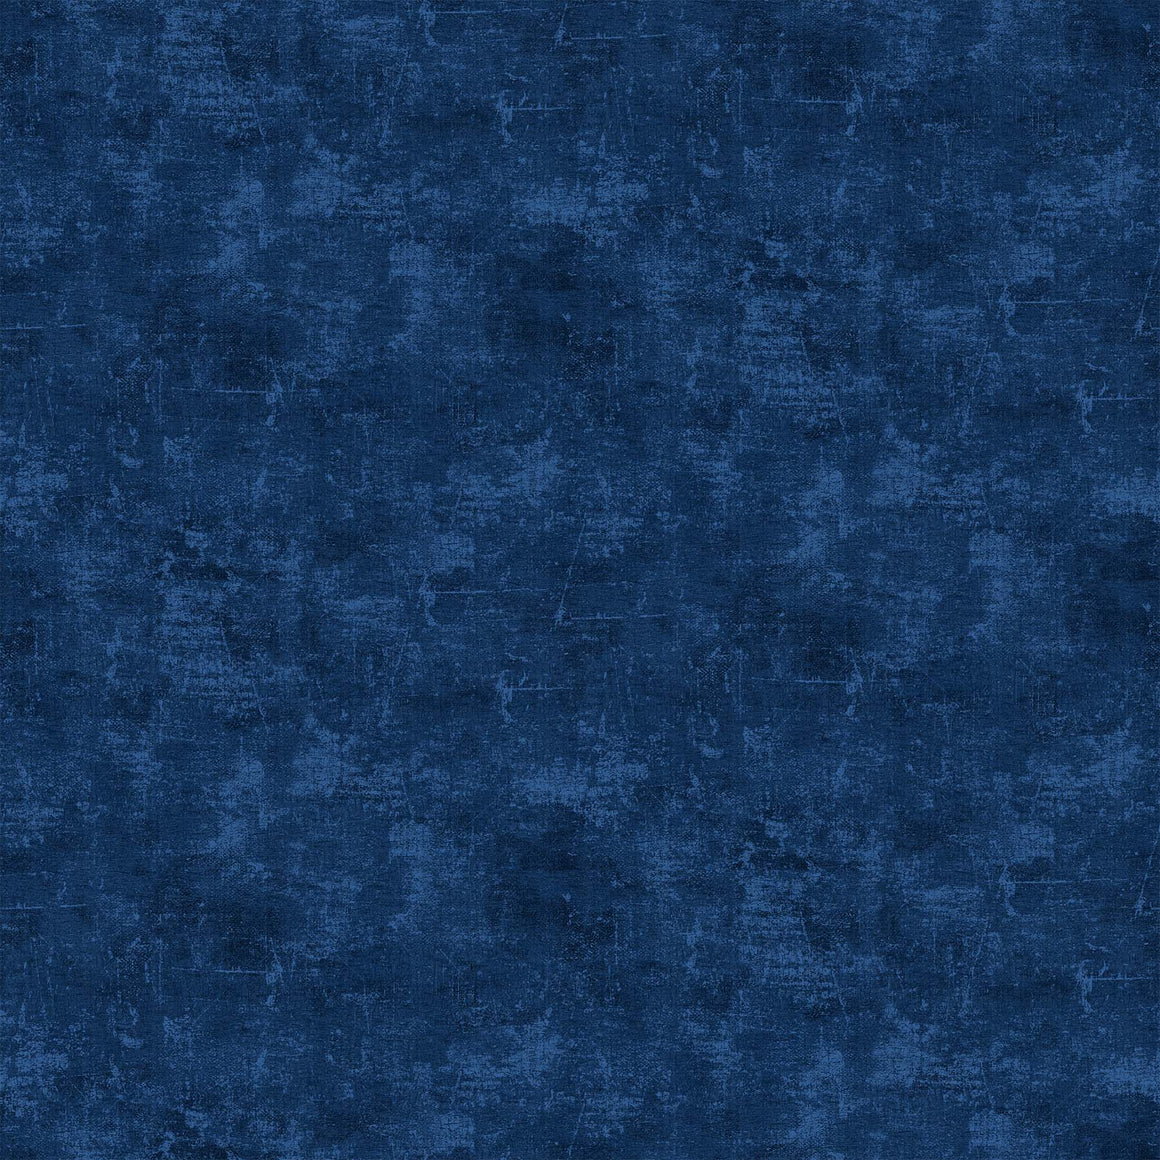 Navy - Canvas Texture - 9030-49, Designer Fabric, Northcott, [variant_title] - Mad About Patchwork